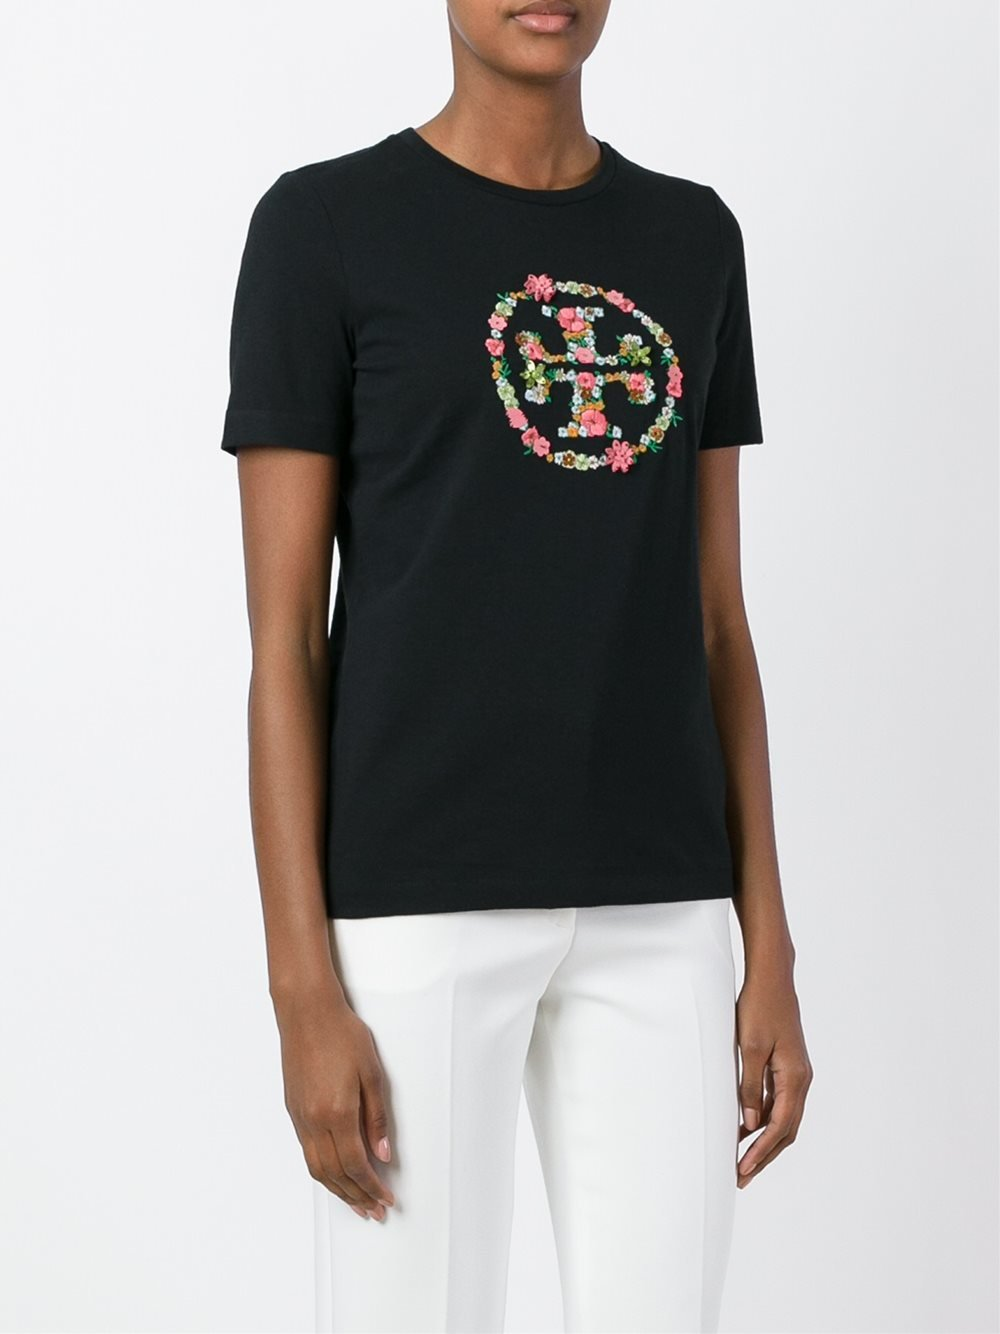 tory burch embroidered logo t shirt in black lyst